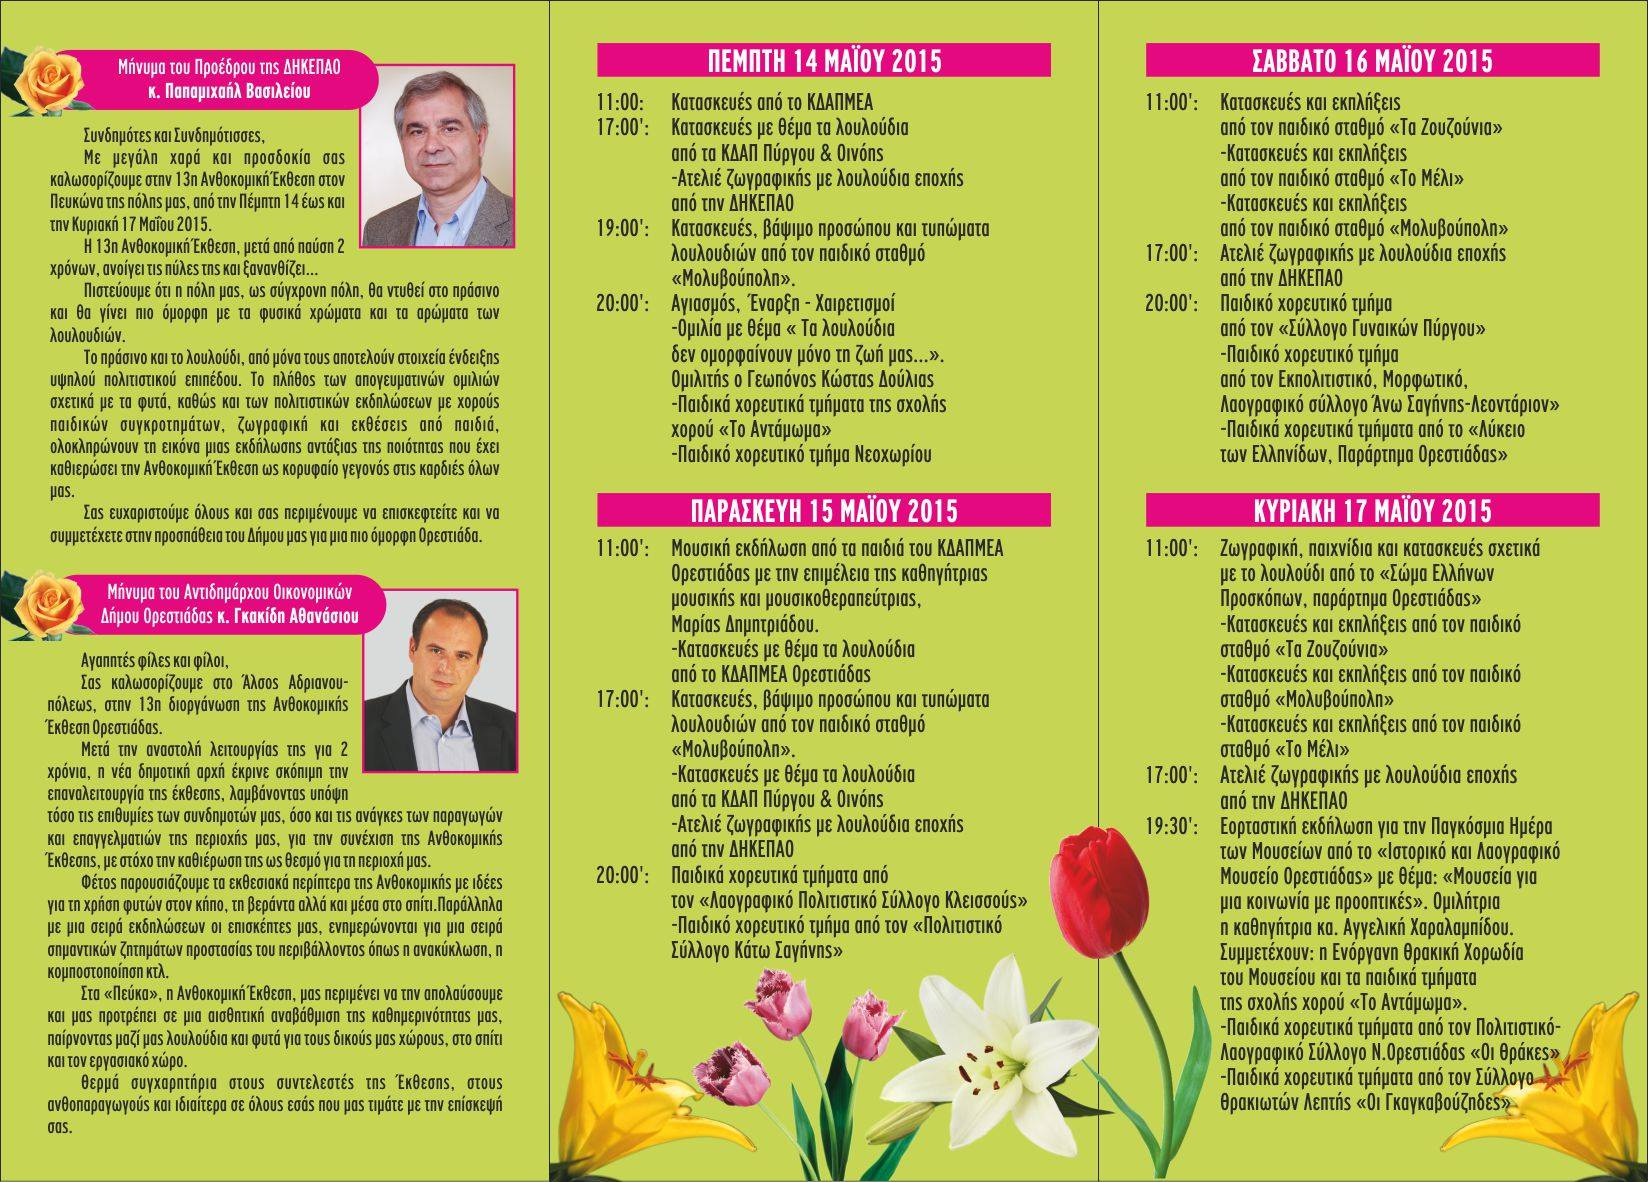 Zeolife.gr participates at the 13th Flower Exhibition in Nea Orestiada, 14 to 17 May, 2015